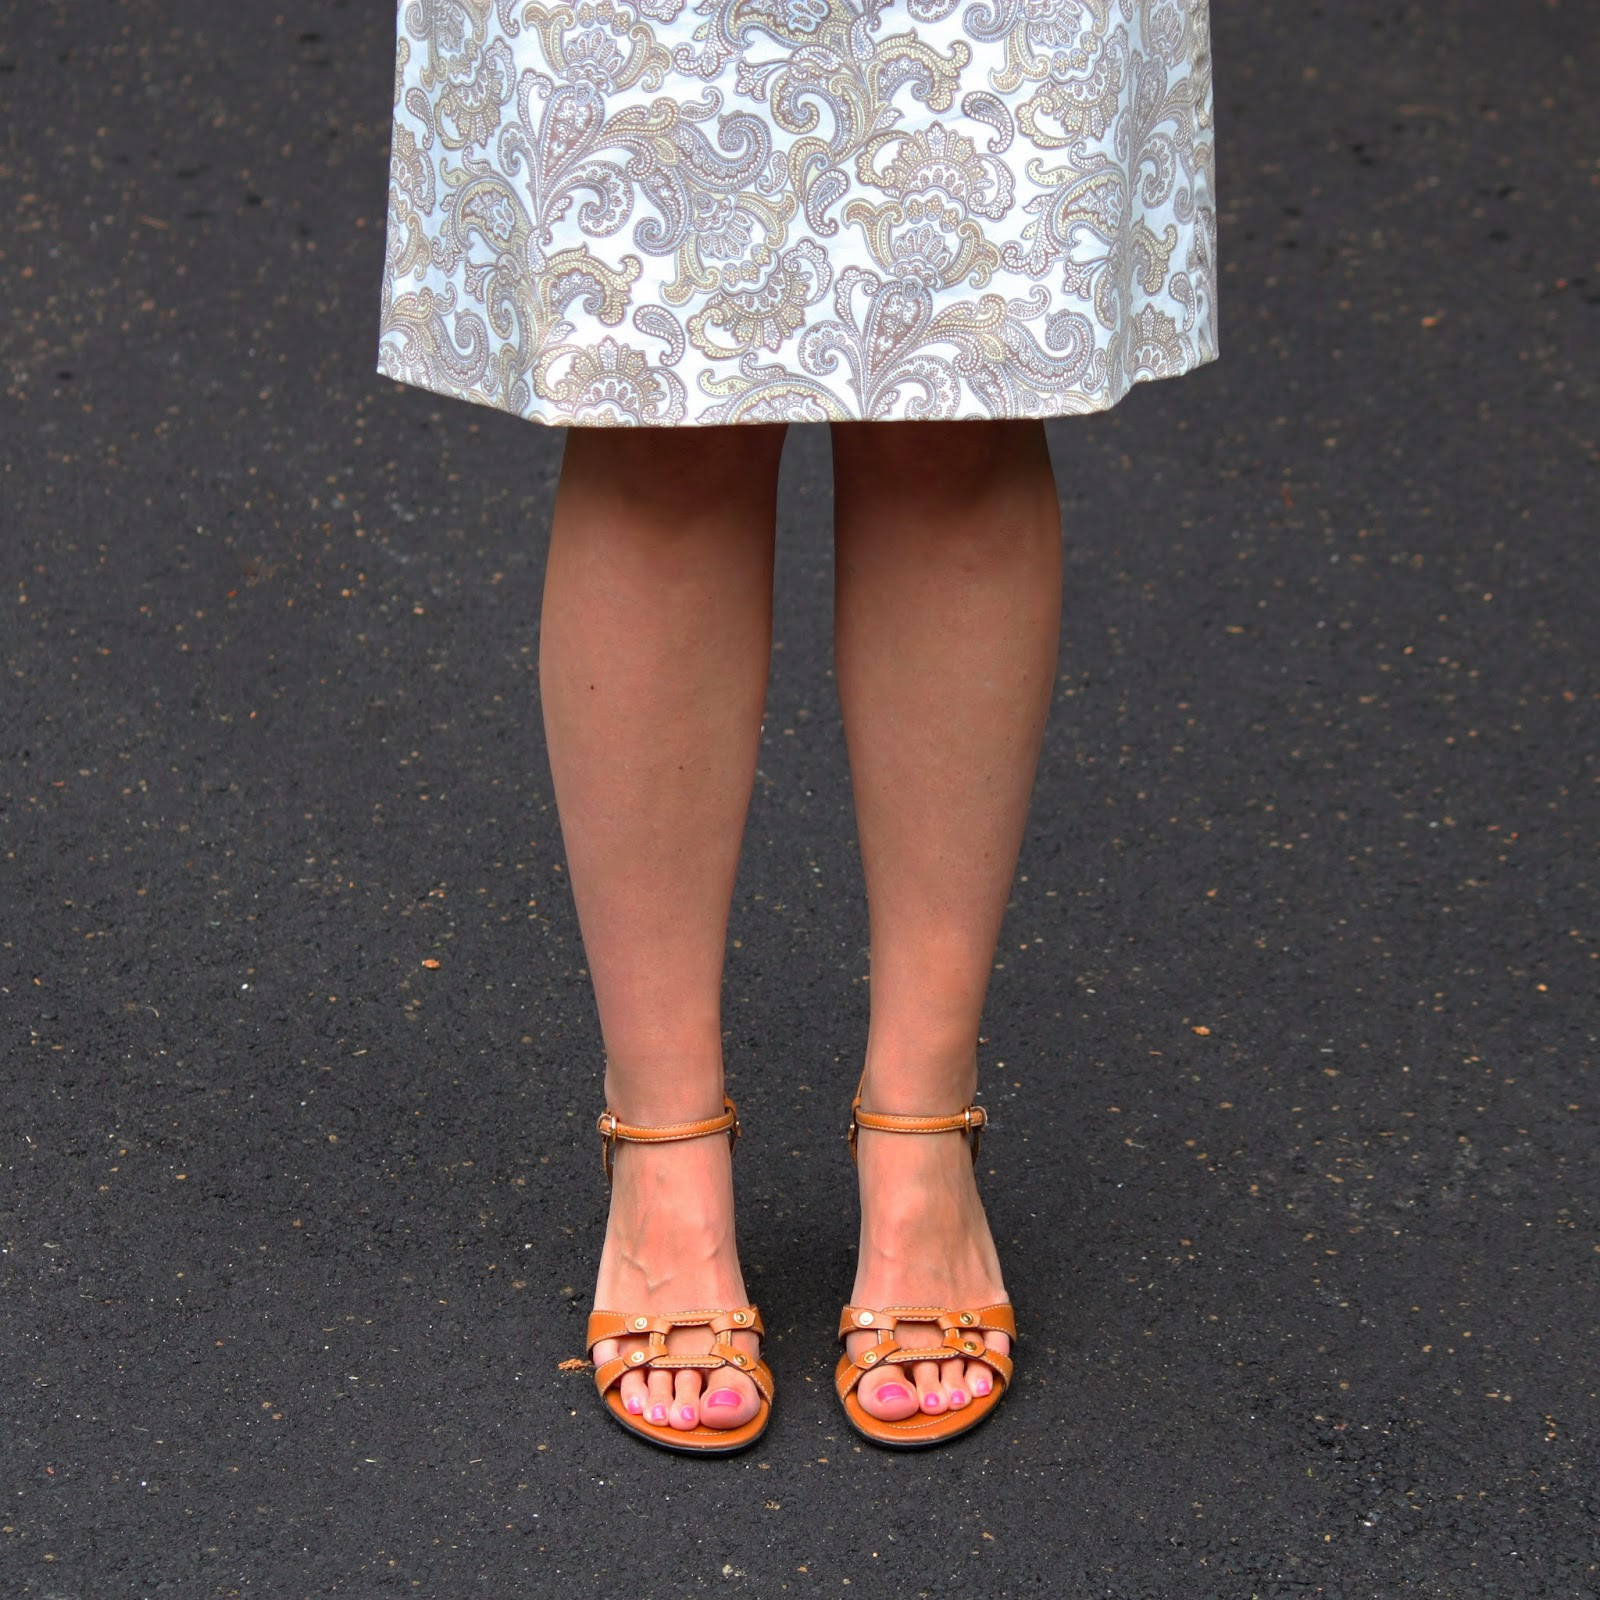 Tan Sandals + Paisley Skirt // The Salty Hanger